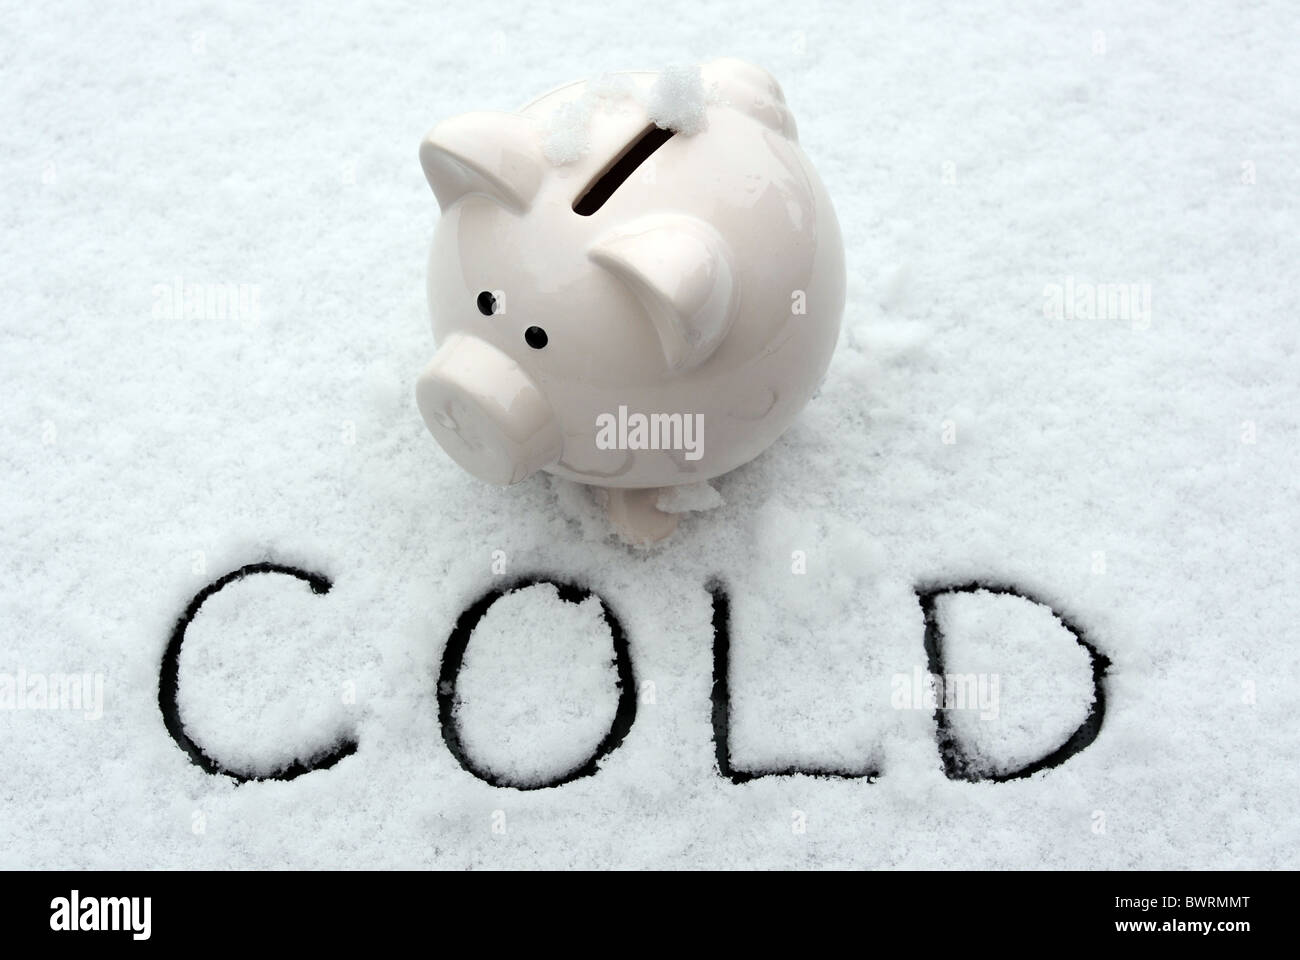 PIGGYBANK IN SNOW IN COLD FREEZING WINTER CONDITIONS RE FROZEN SAVINGS WINTER FUEL PAYMENTS INVESTMENTS ETC - Stock Image